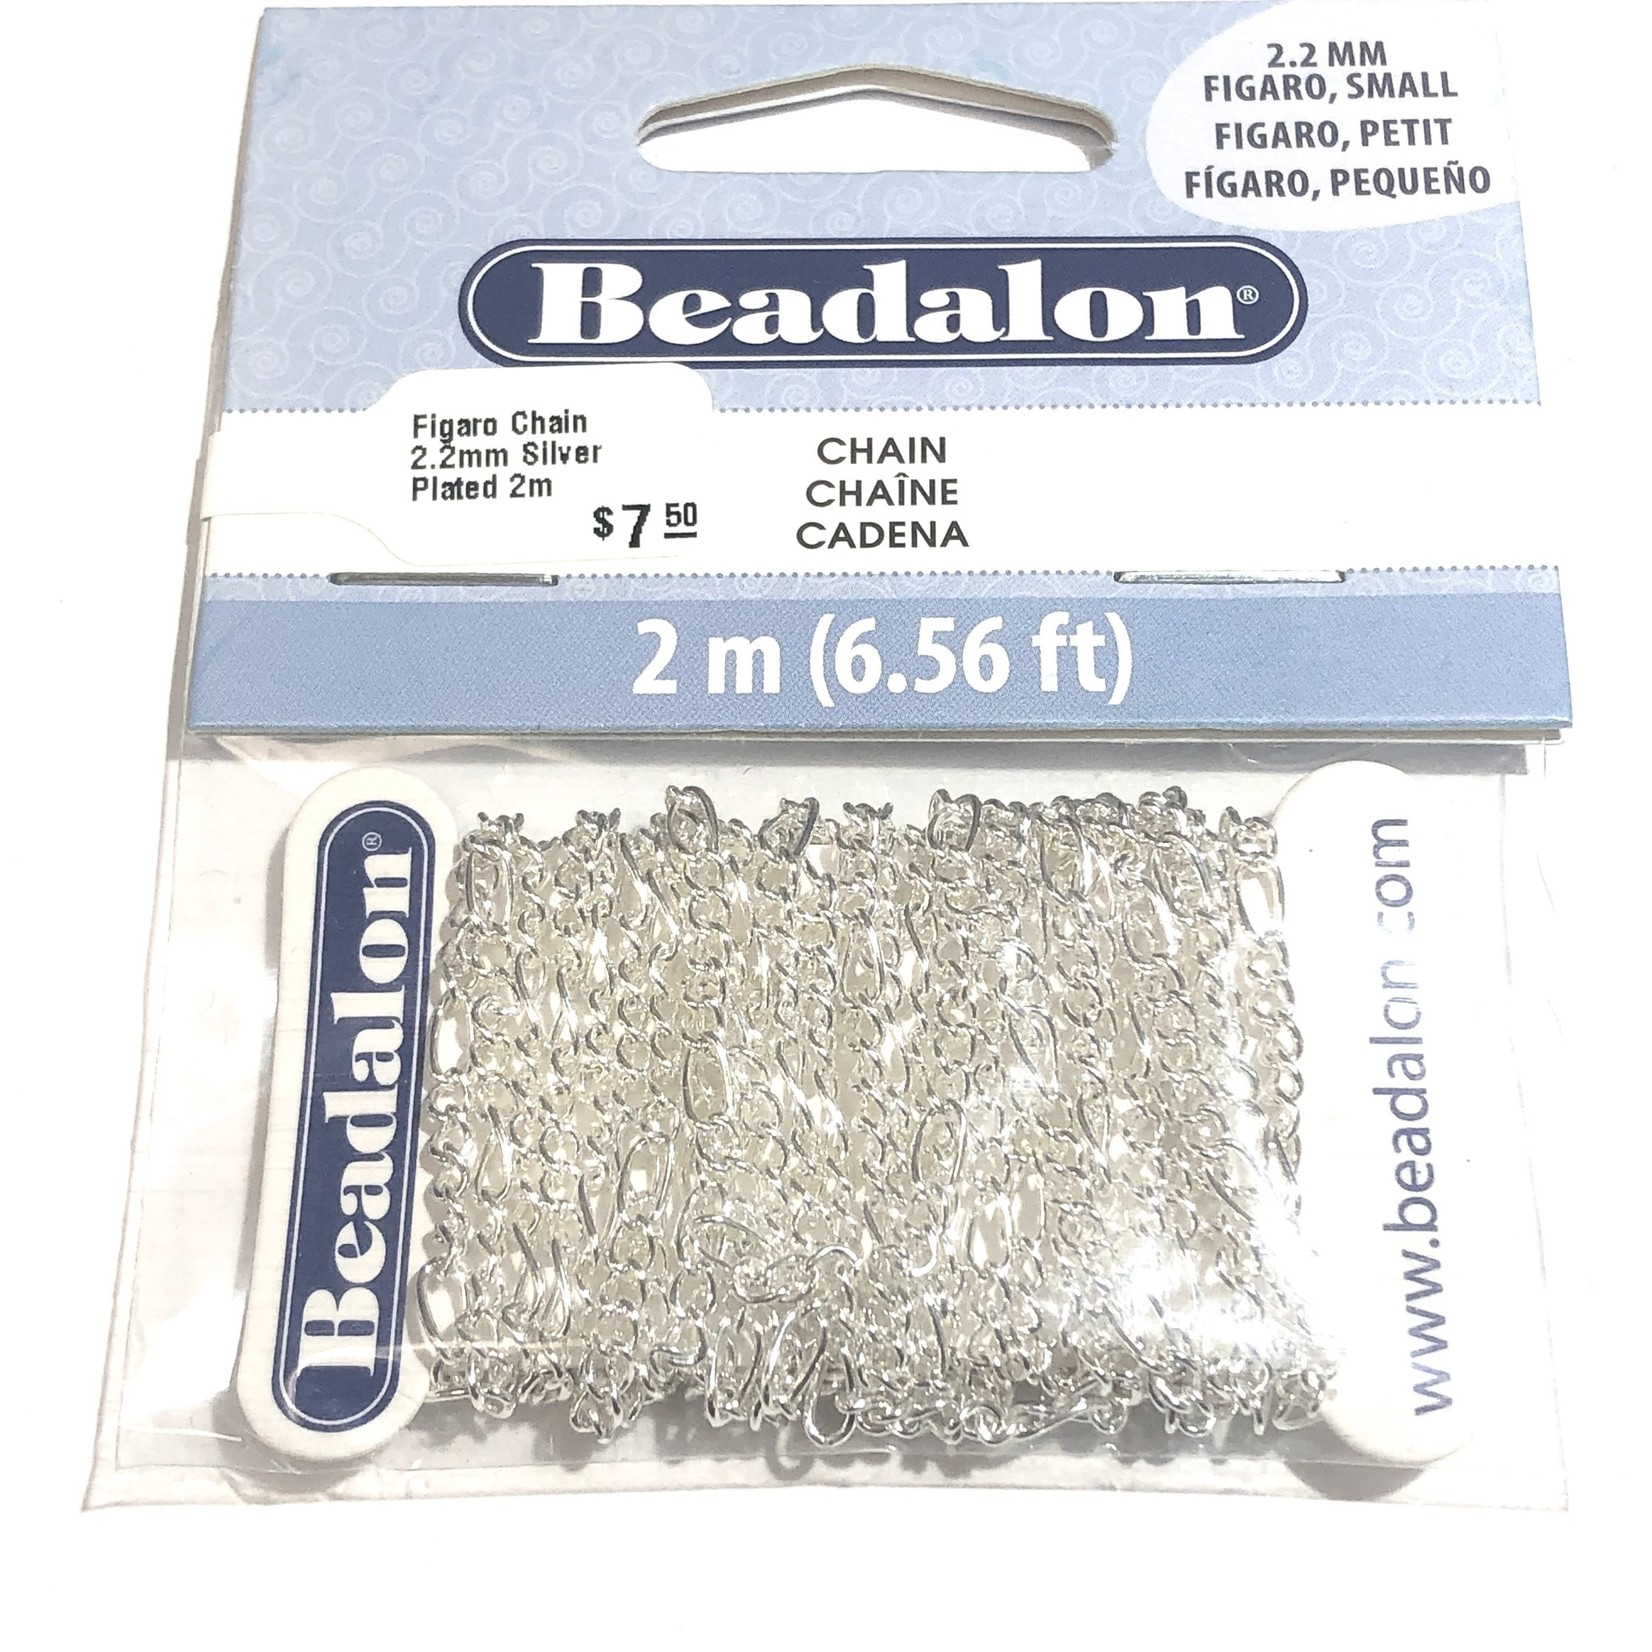 Beadalon Figaro Chain 2.2mm Silver Plated 2m